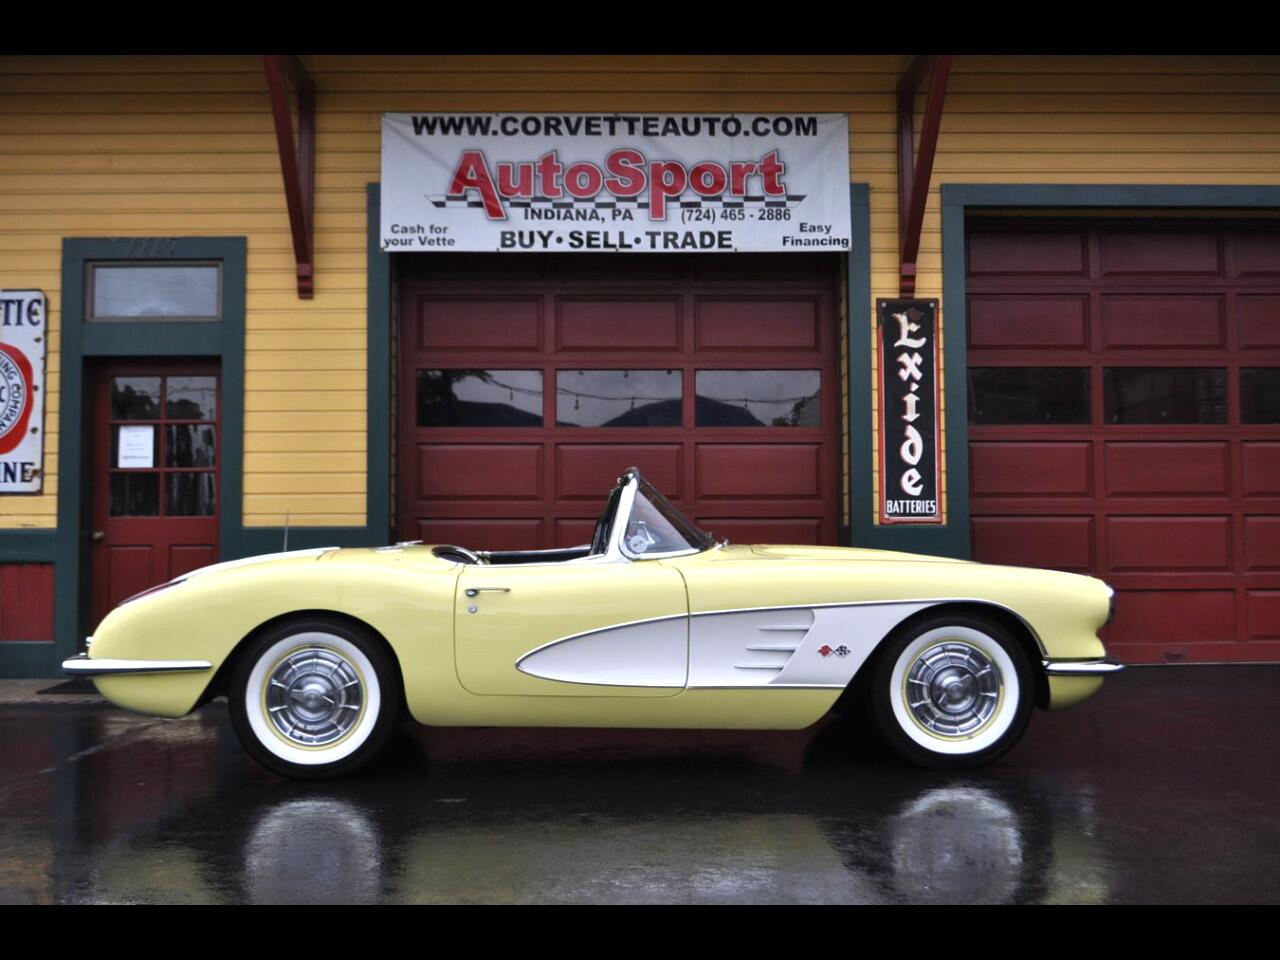 1958 Chevrolet Corvette Extremely rare Panama Yellow 1958 Corvette!